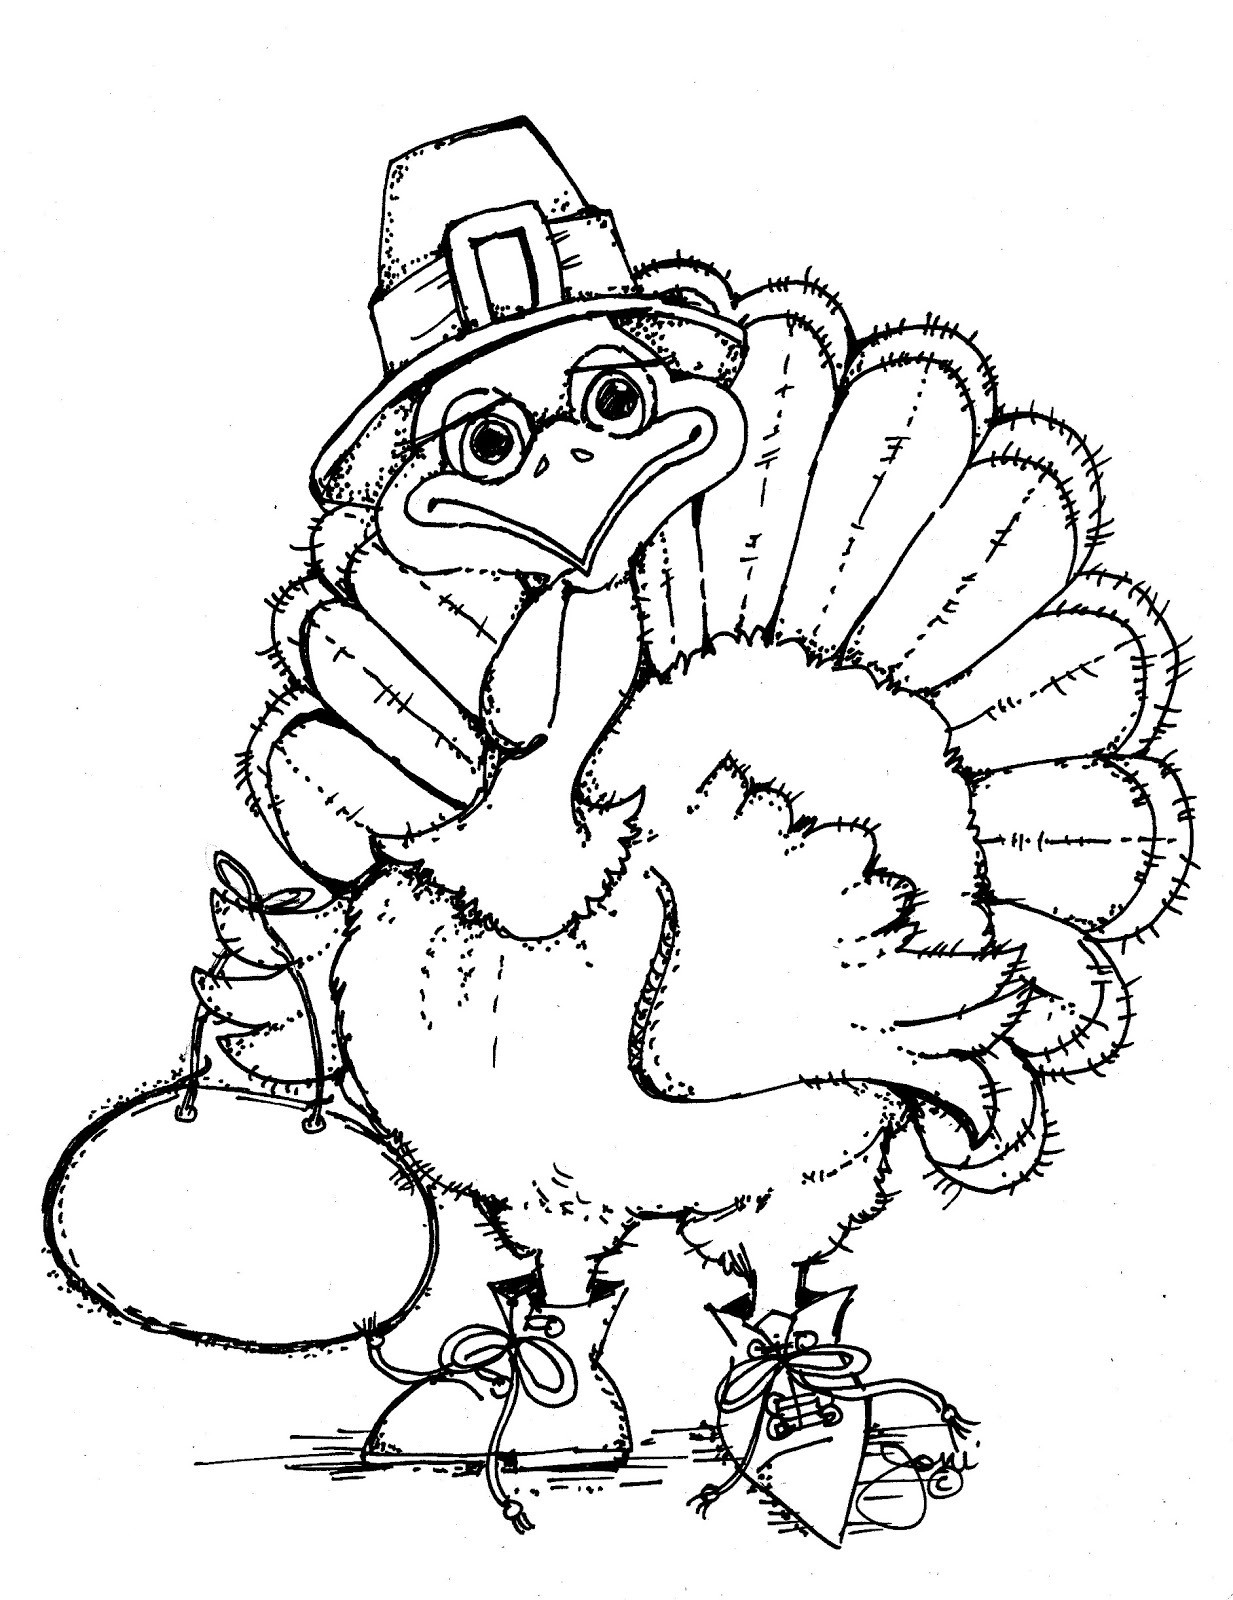 Thanksgiving Turkey Printable  Free Printable Turkey Coloring Pages For Kids